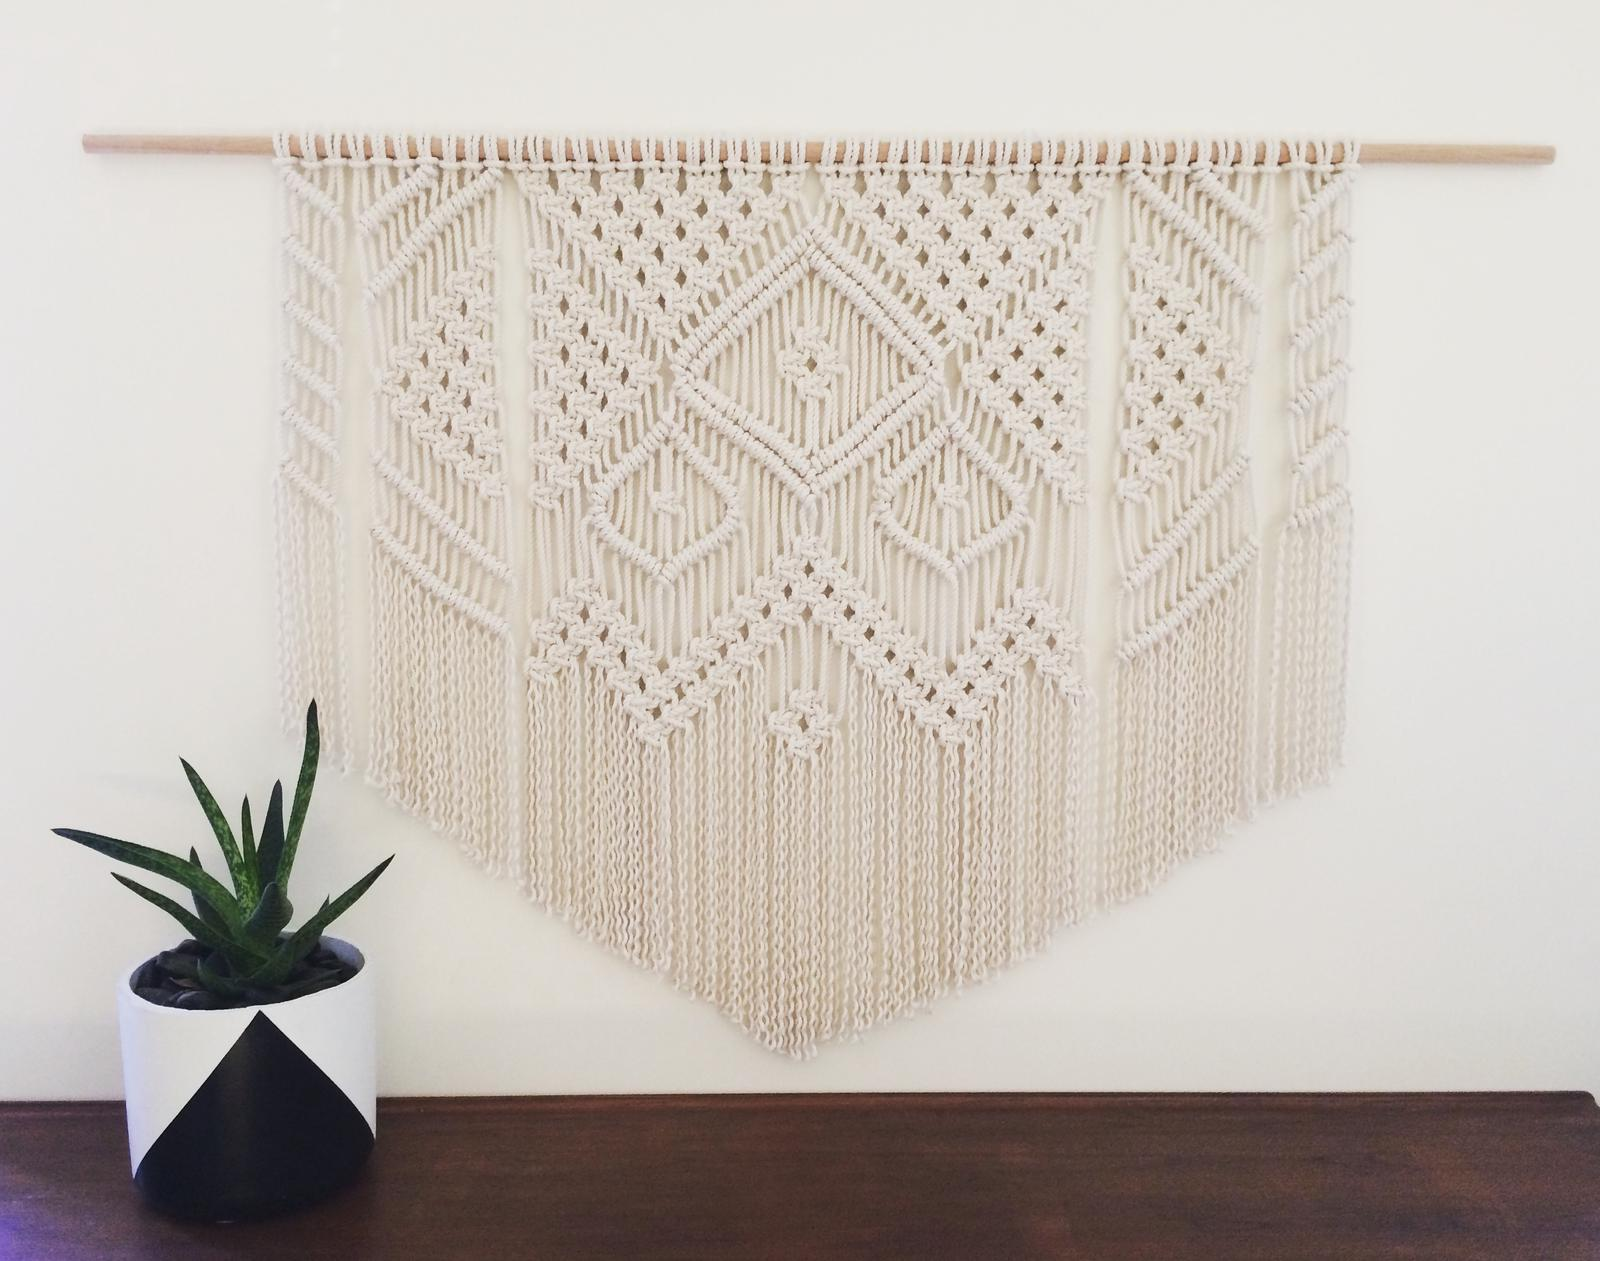 Large custom wall hanging